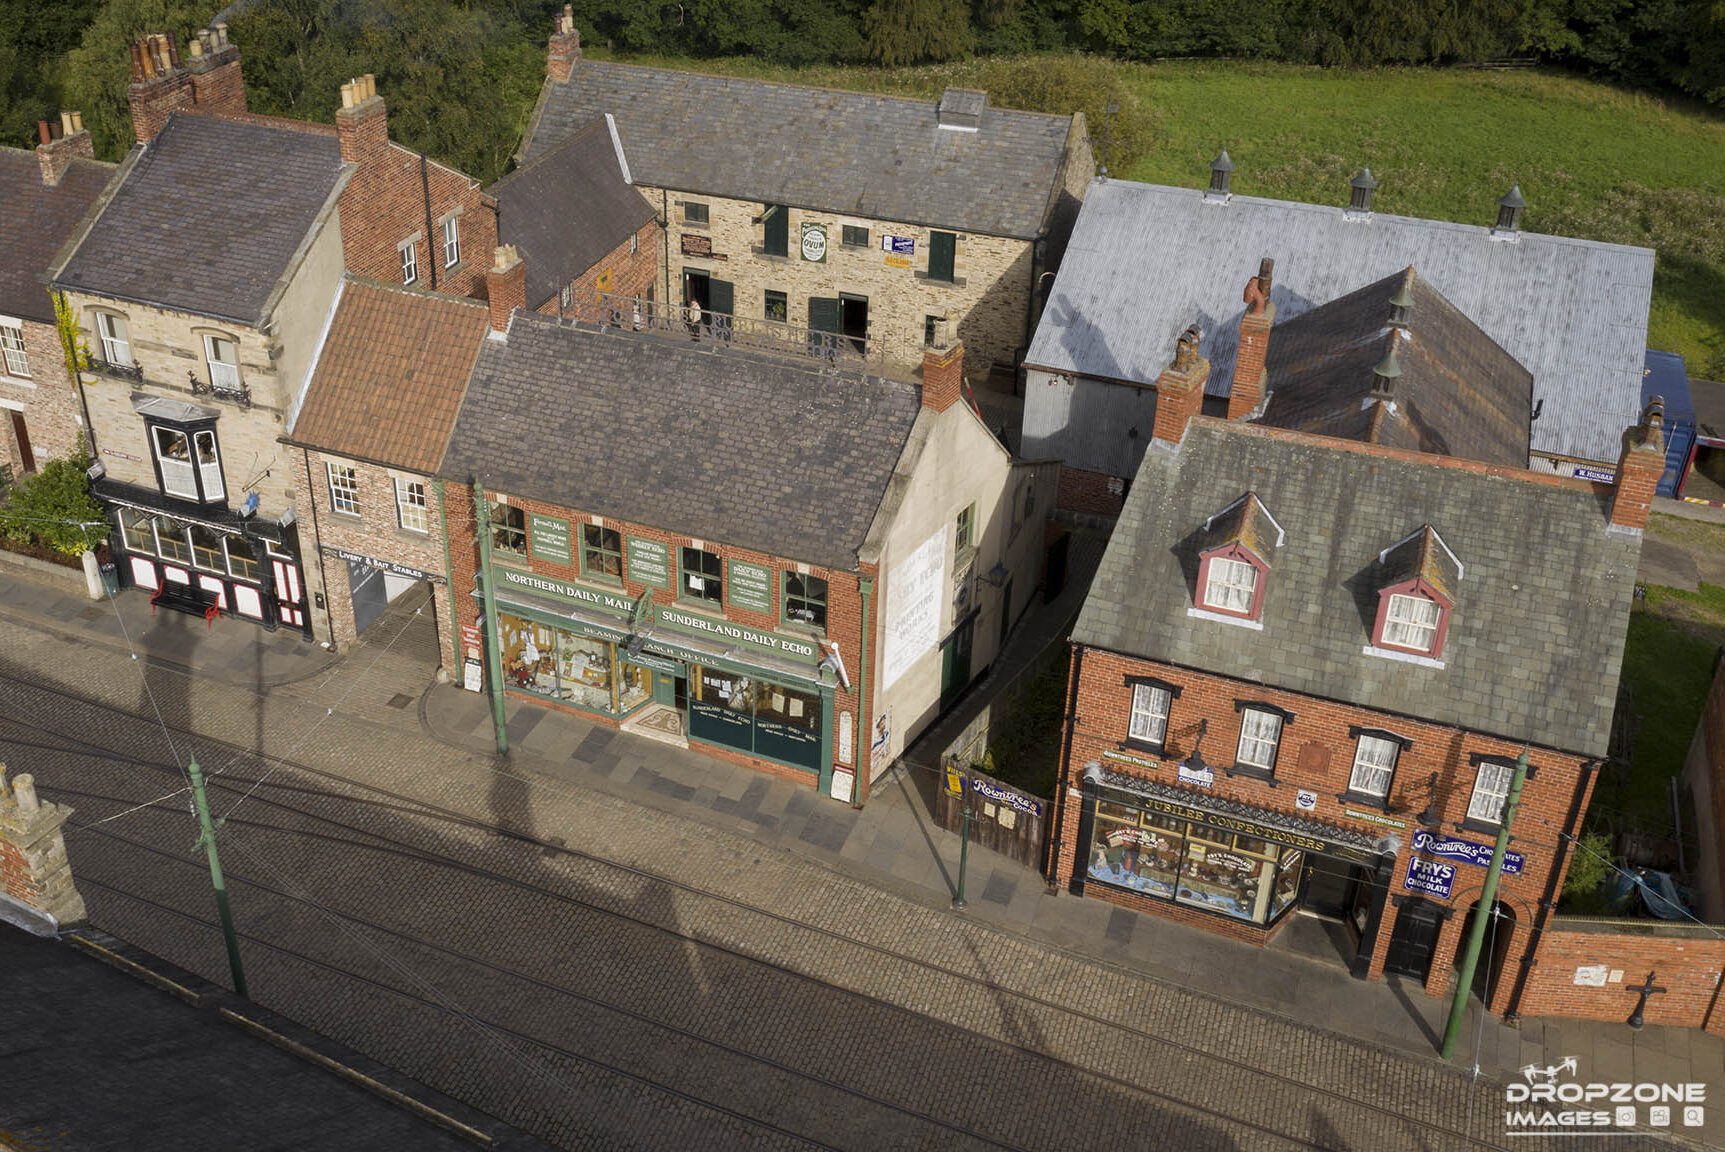 Aerial view by drone over Beamish museum. Historic sight from the skies